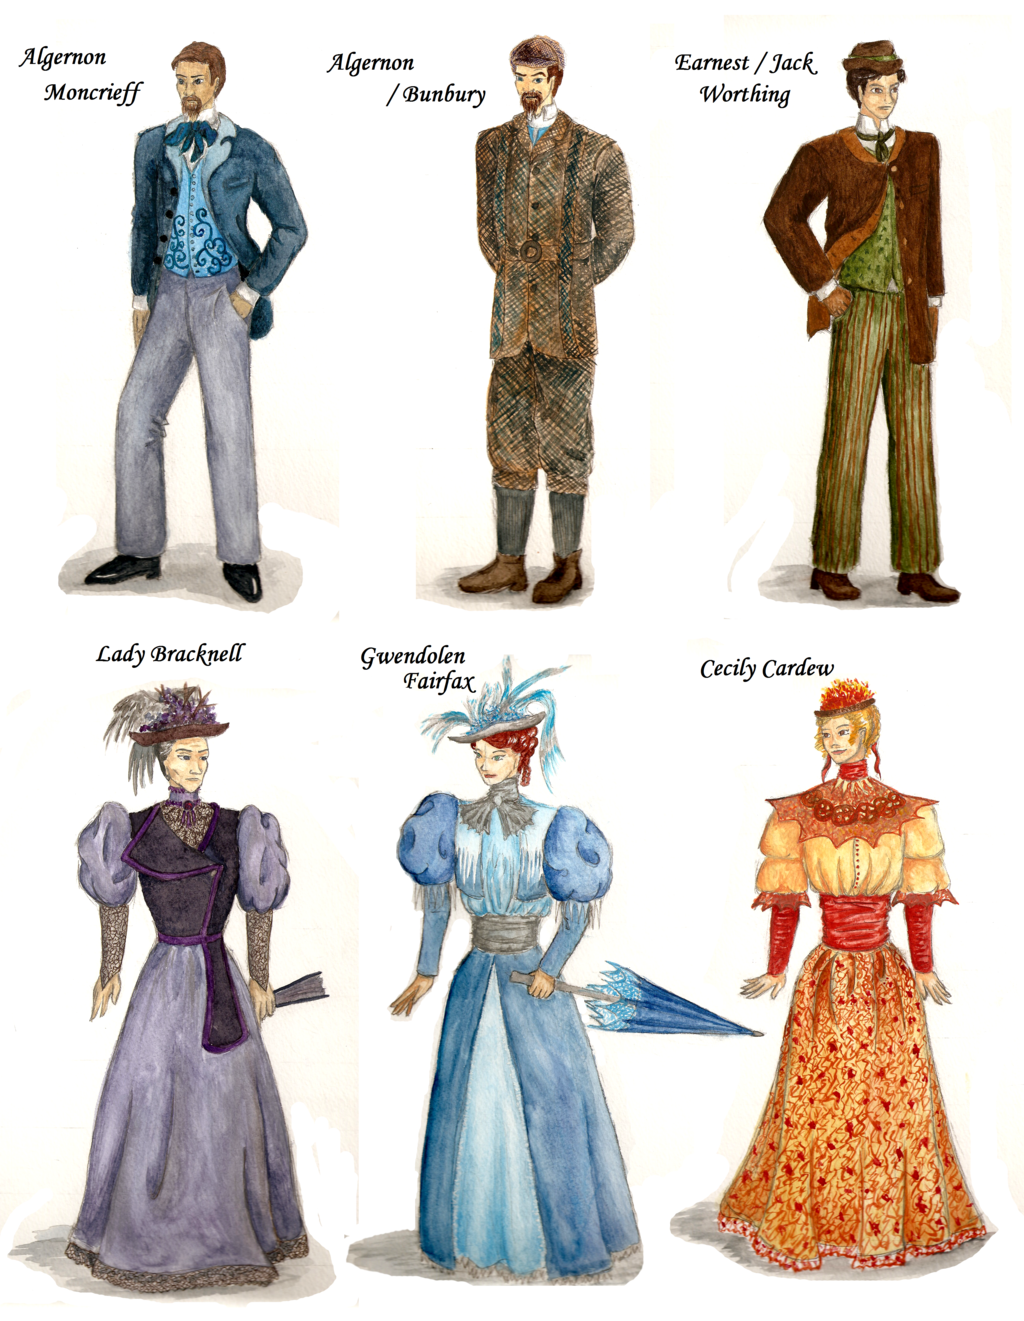 the importance of being earnest costumes the importance of being the importance of being earnest costumes the importance of being earnest by obsidianpyre